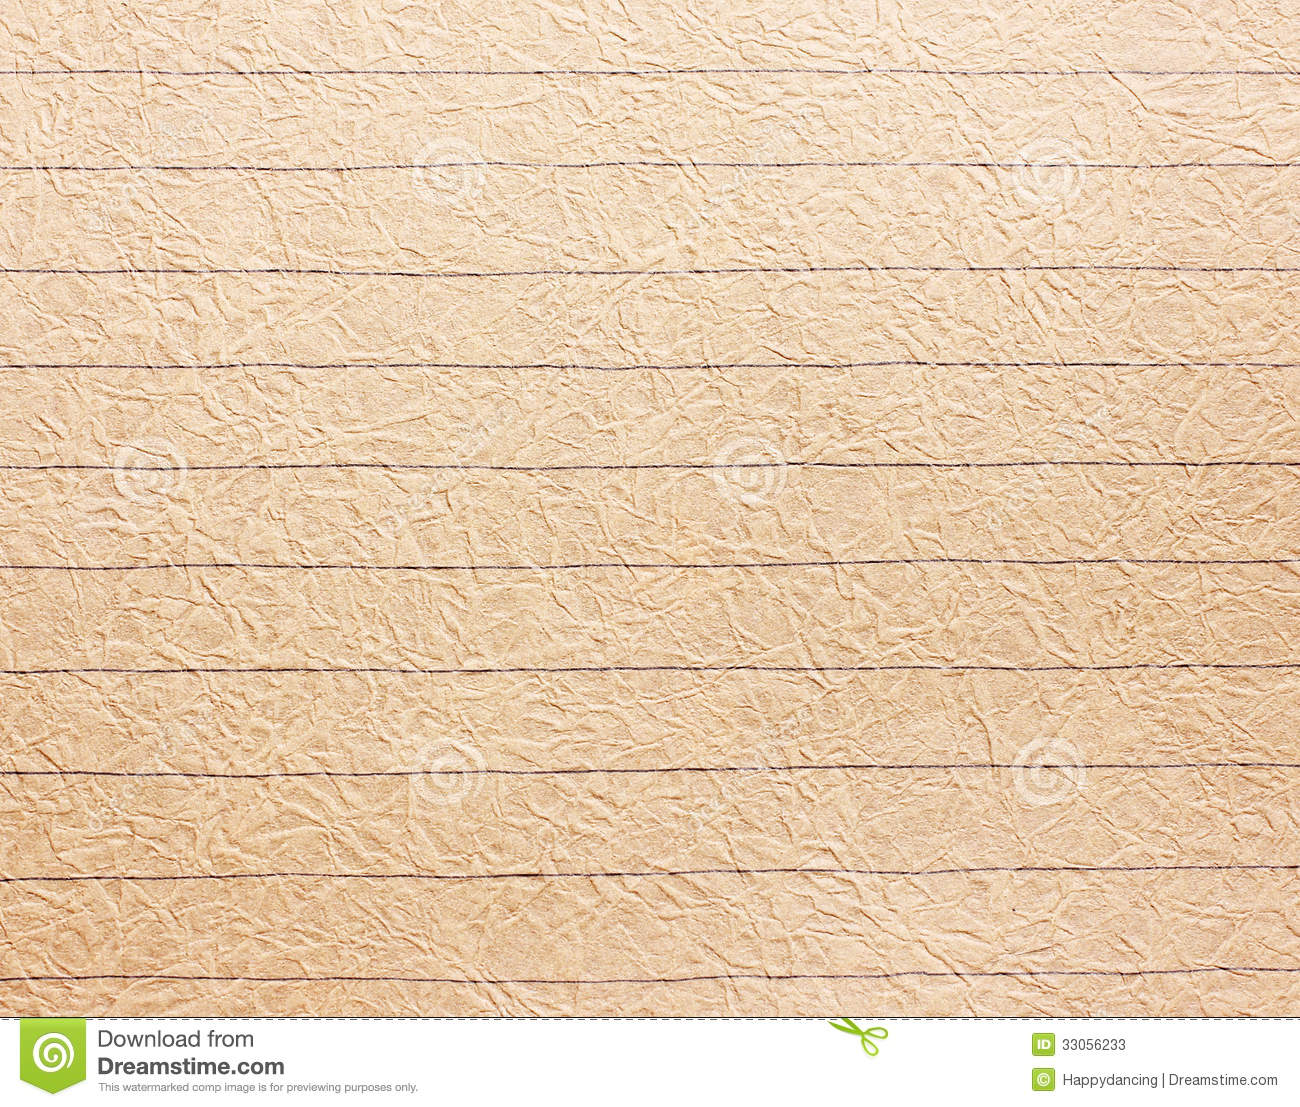 Wallpaper Lined Paper: Old Rough Lined Notebook Paper Background Stock Image